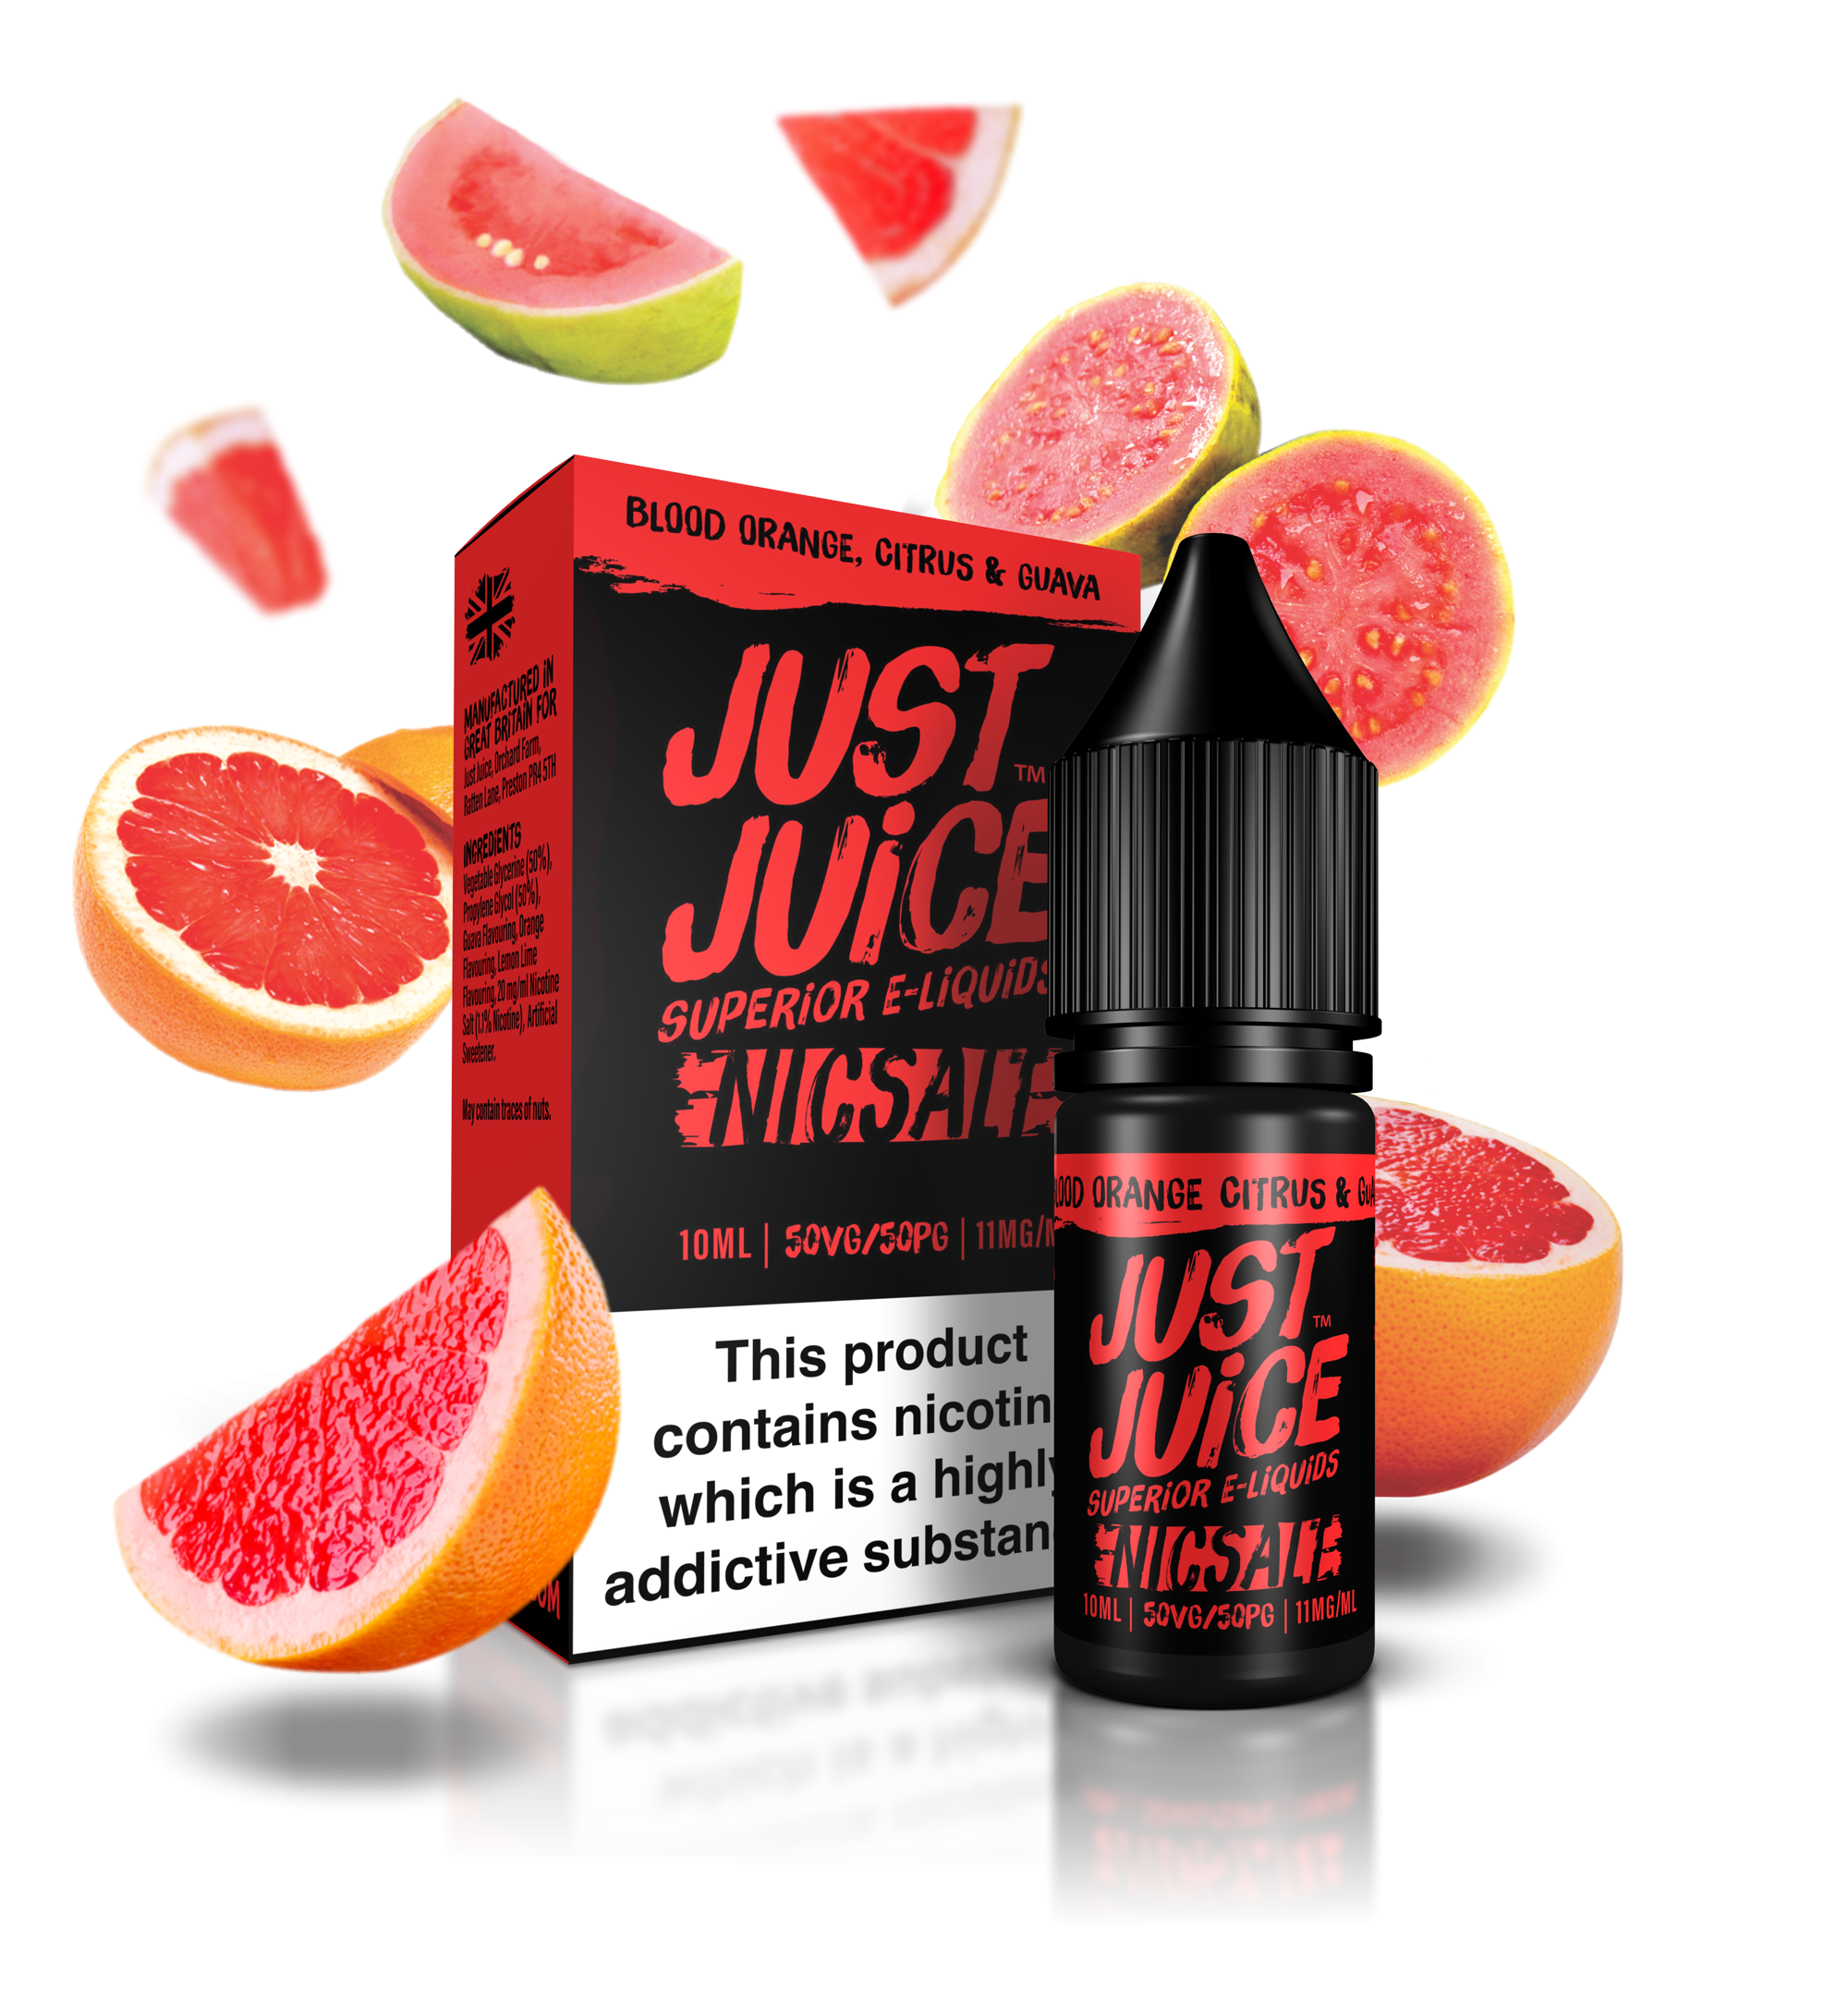 Just Juice Blood Orange, Citrus & Guava 10ml Nic Salt Vape Liquid